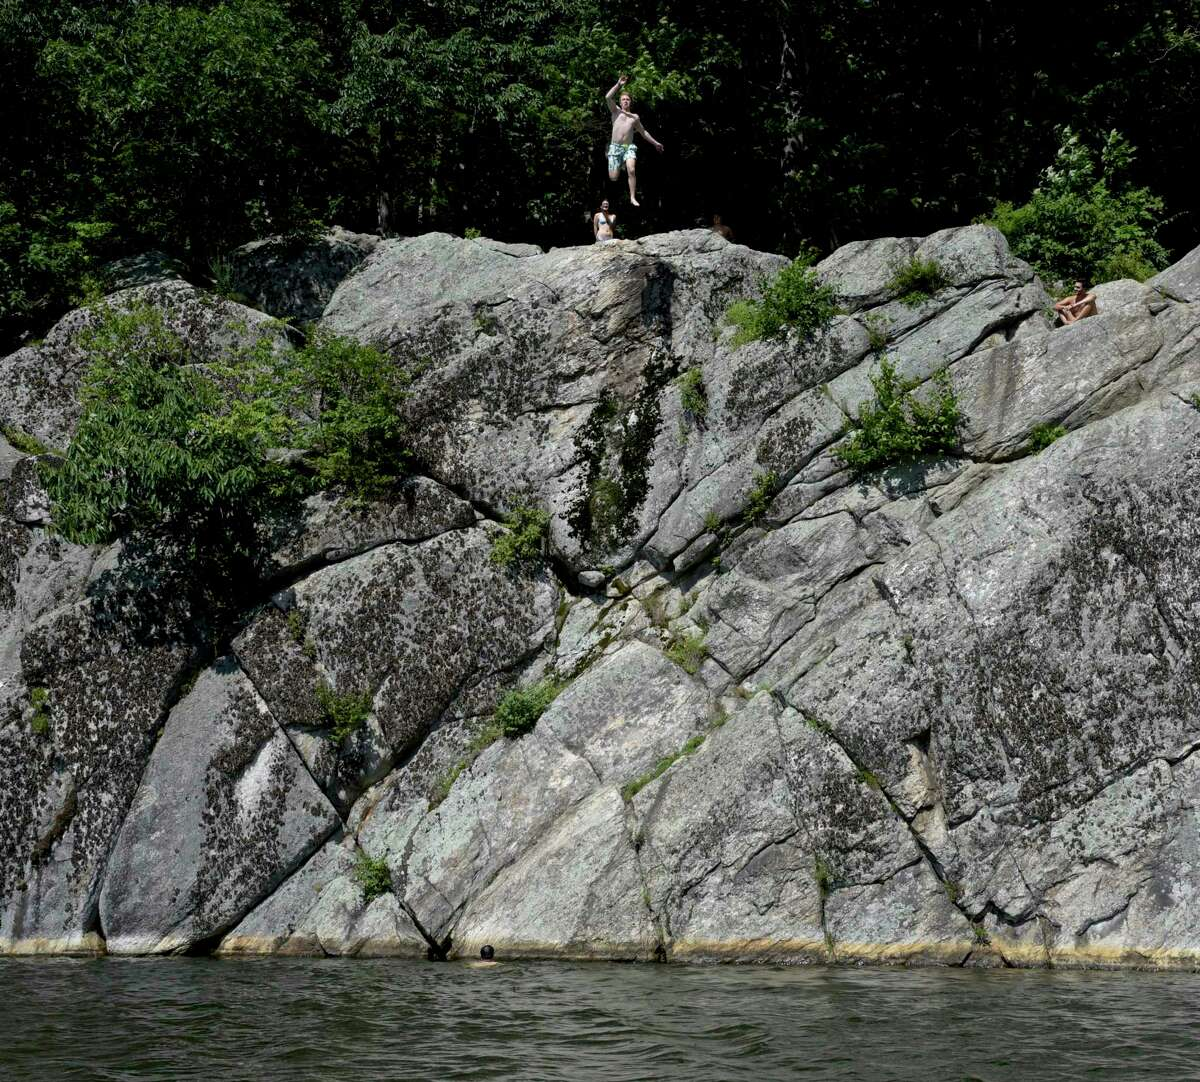 Local teenagers jump from the cliffs in Richardson Park into Mamanasco Lake. The Mamanasco Lake Improvement Fund (MLIF) is celebrating its 50th anniversary this year. Friday, July 30, 2021, in Ridgefield, Conn.